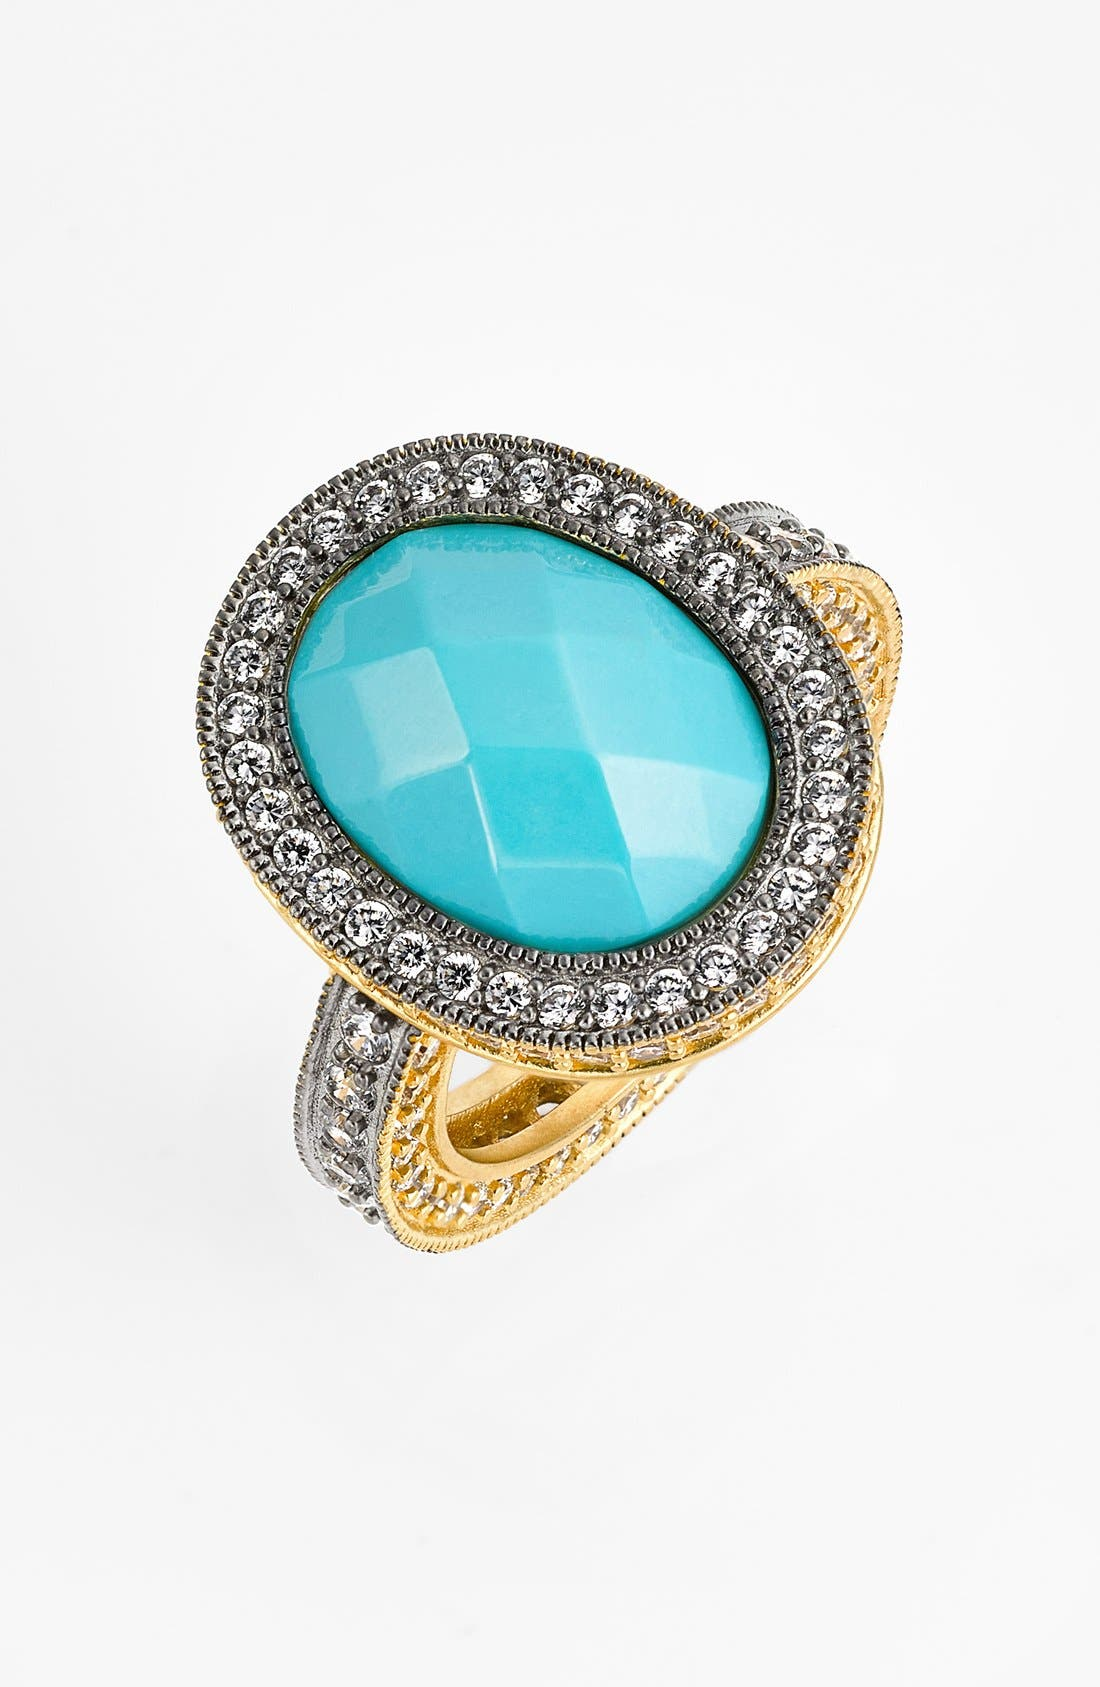 Alternate Image 1 Selected - FREIDA ROTHMAN 'Metropolitan' Oval Stone Ring